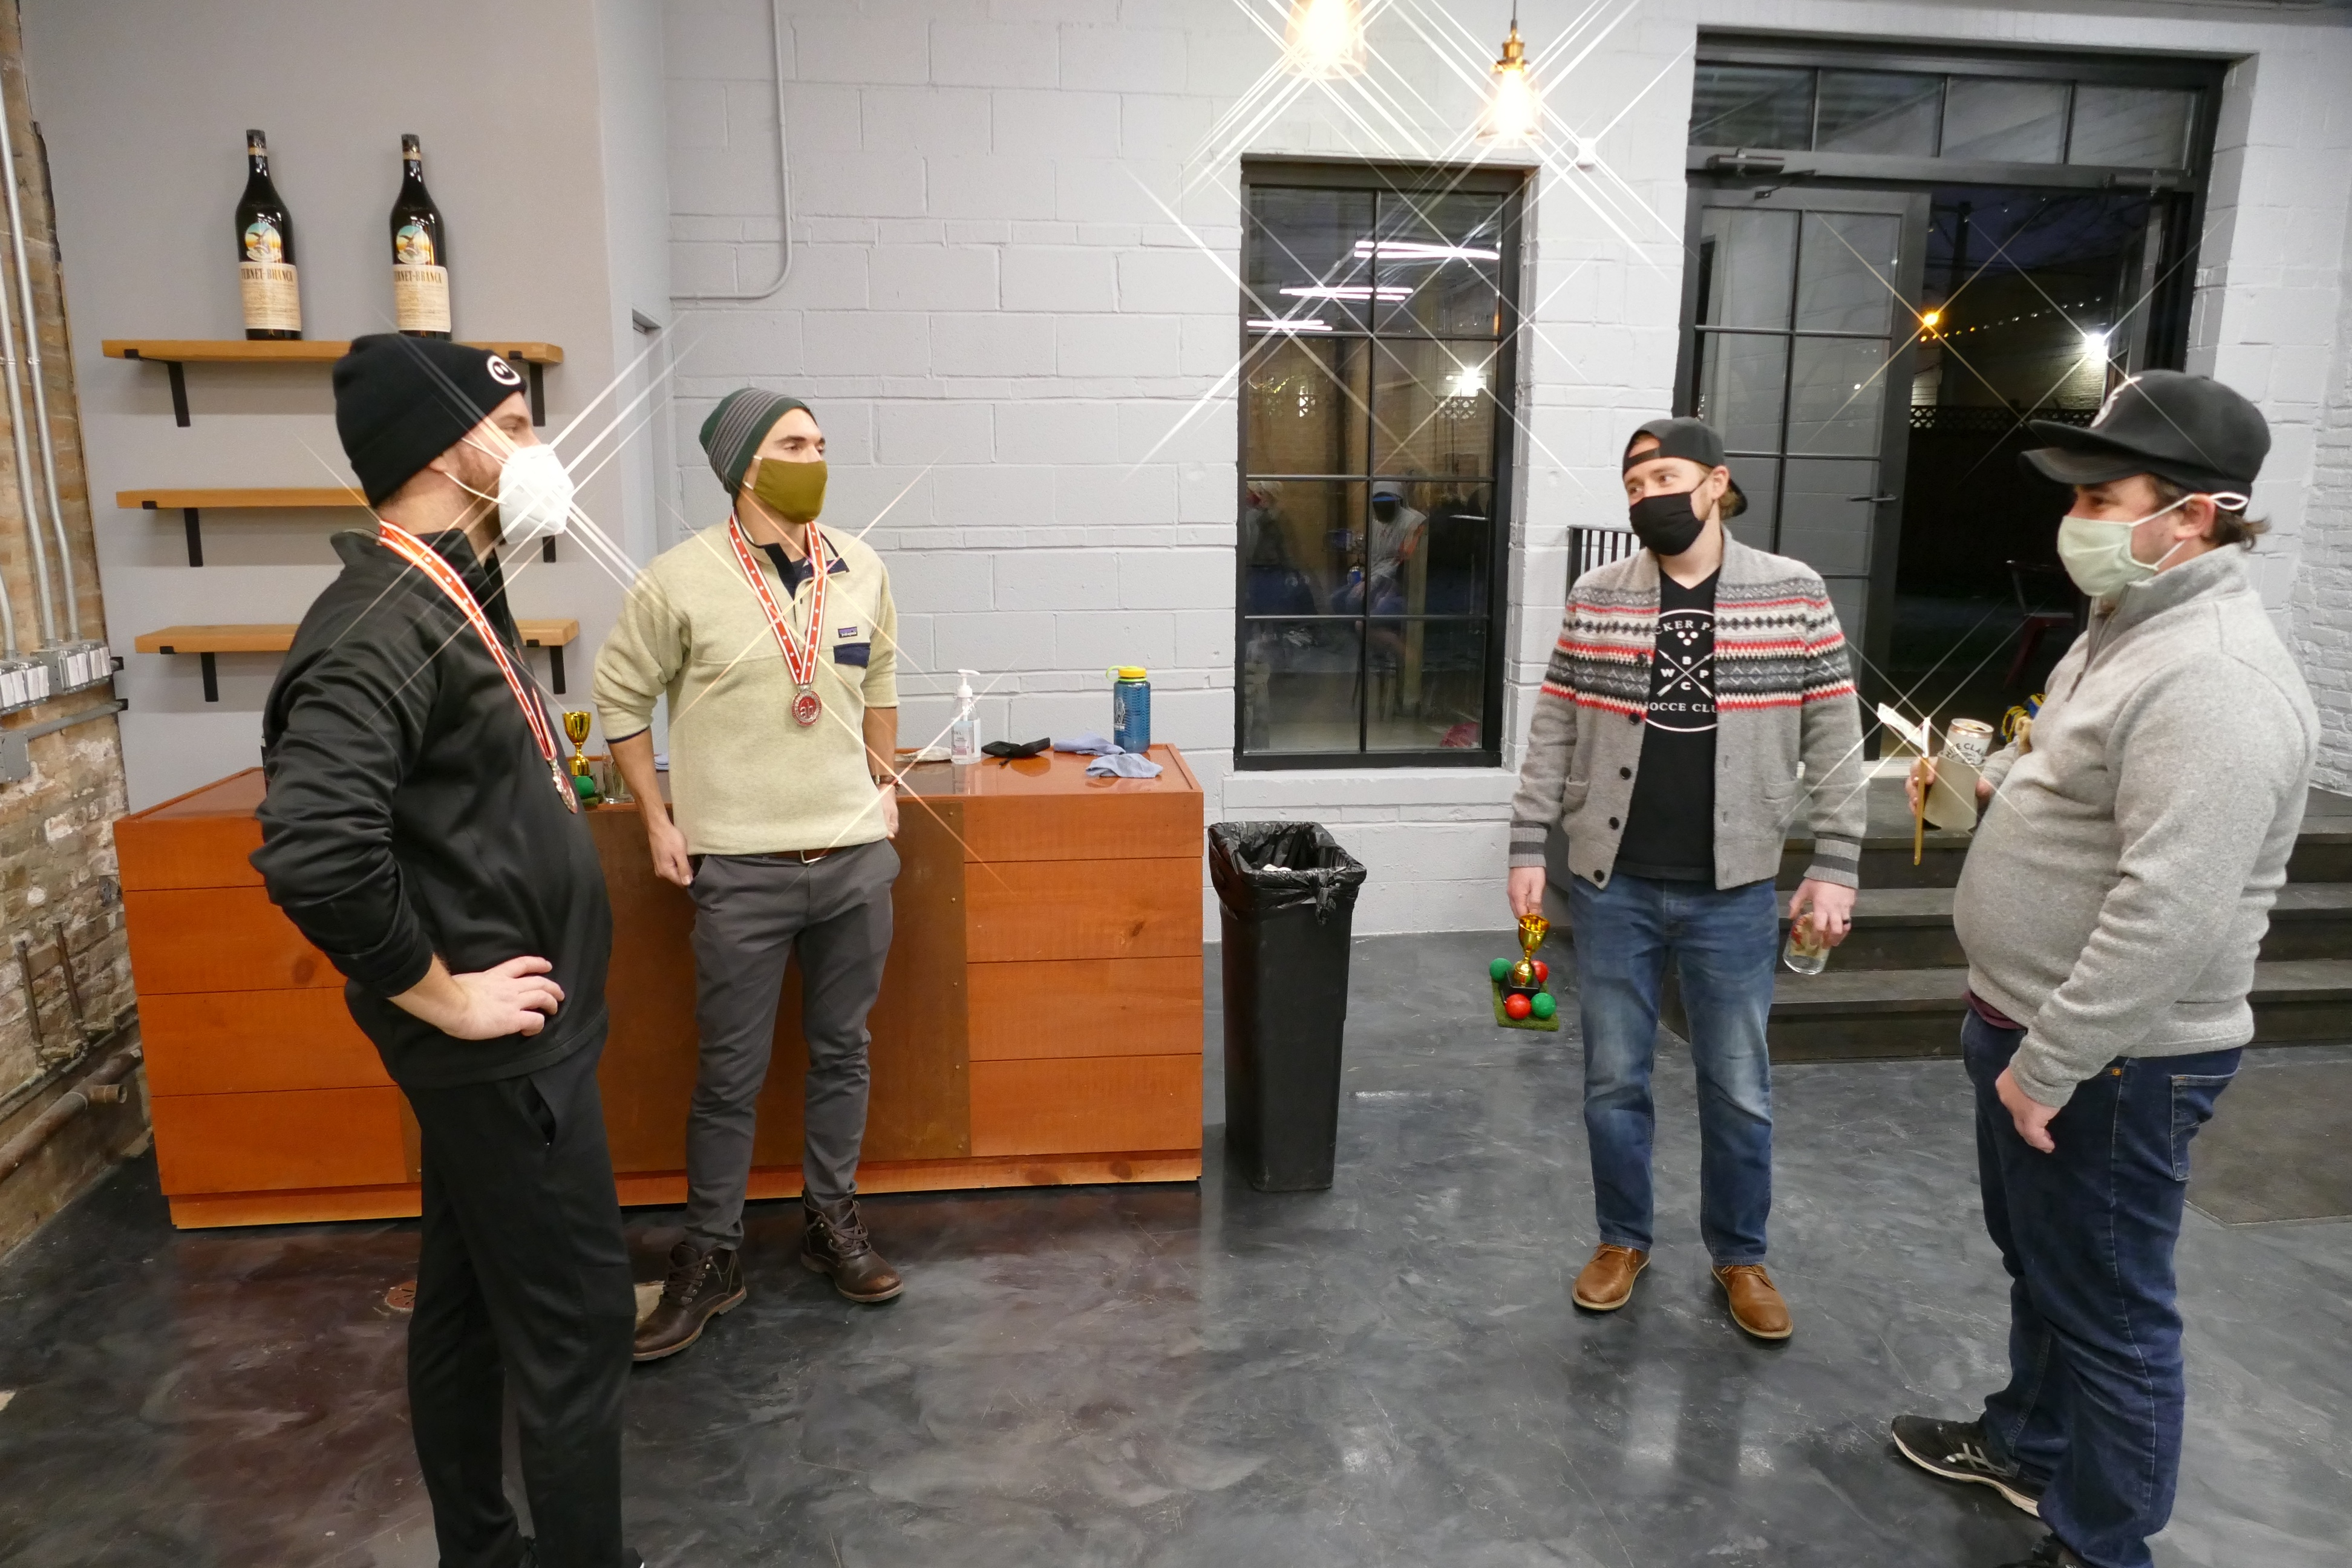 bocce ball champions medals fernet branca event space